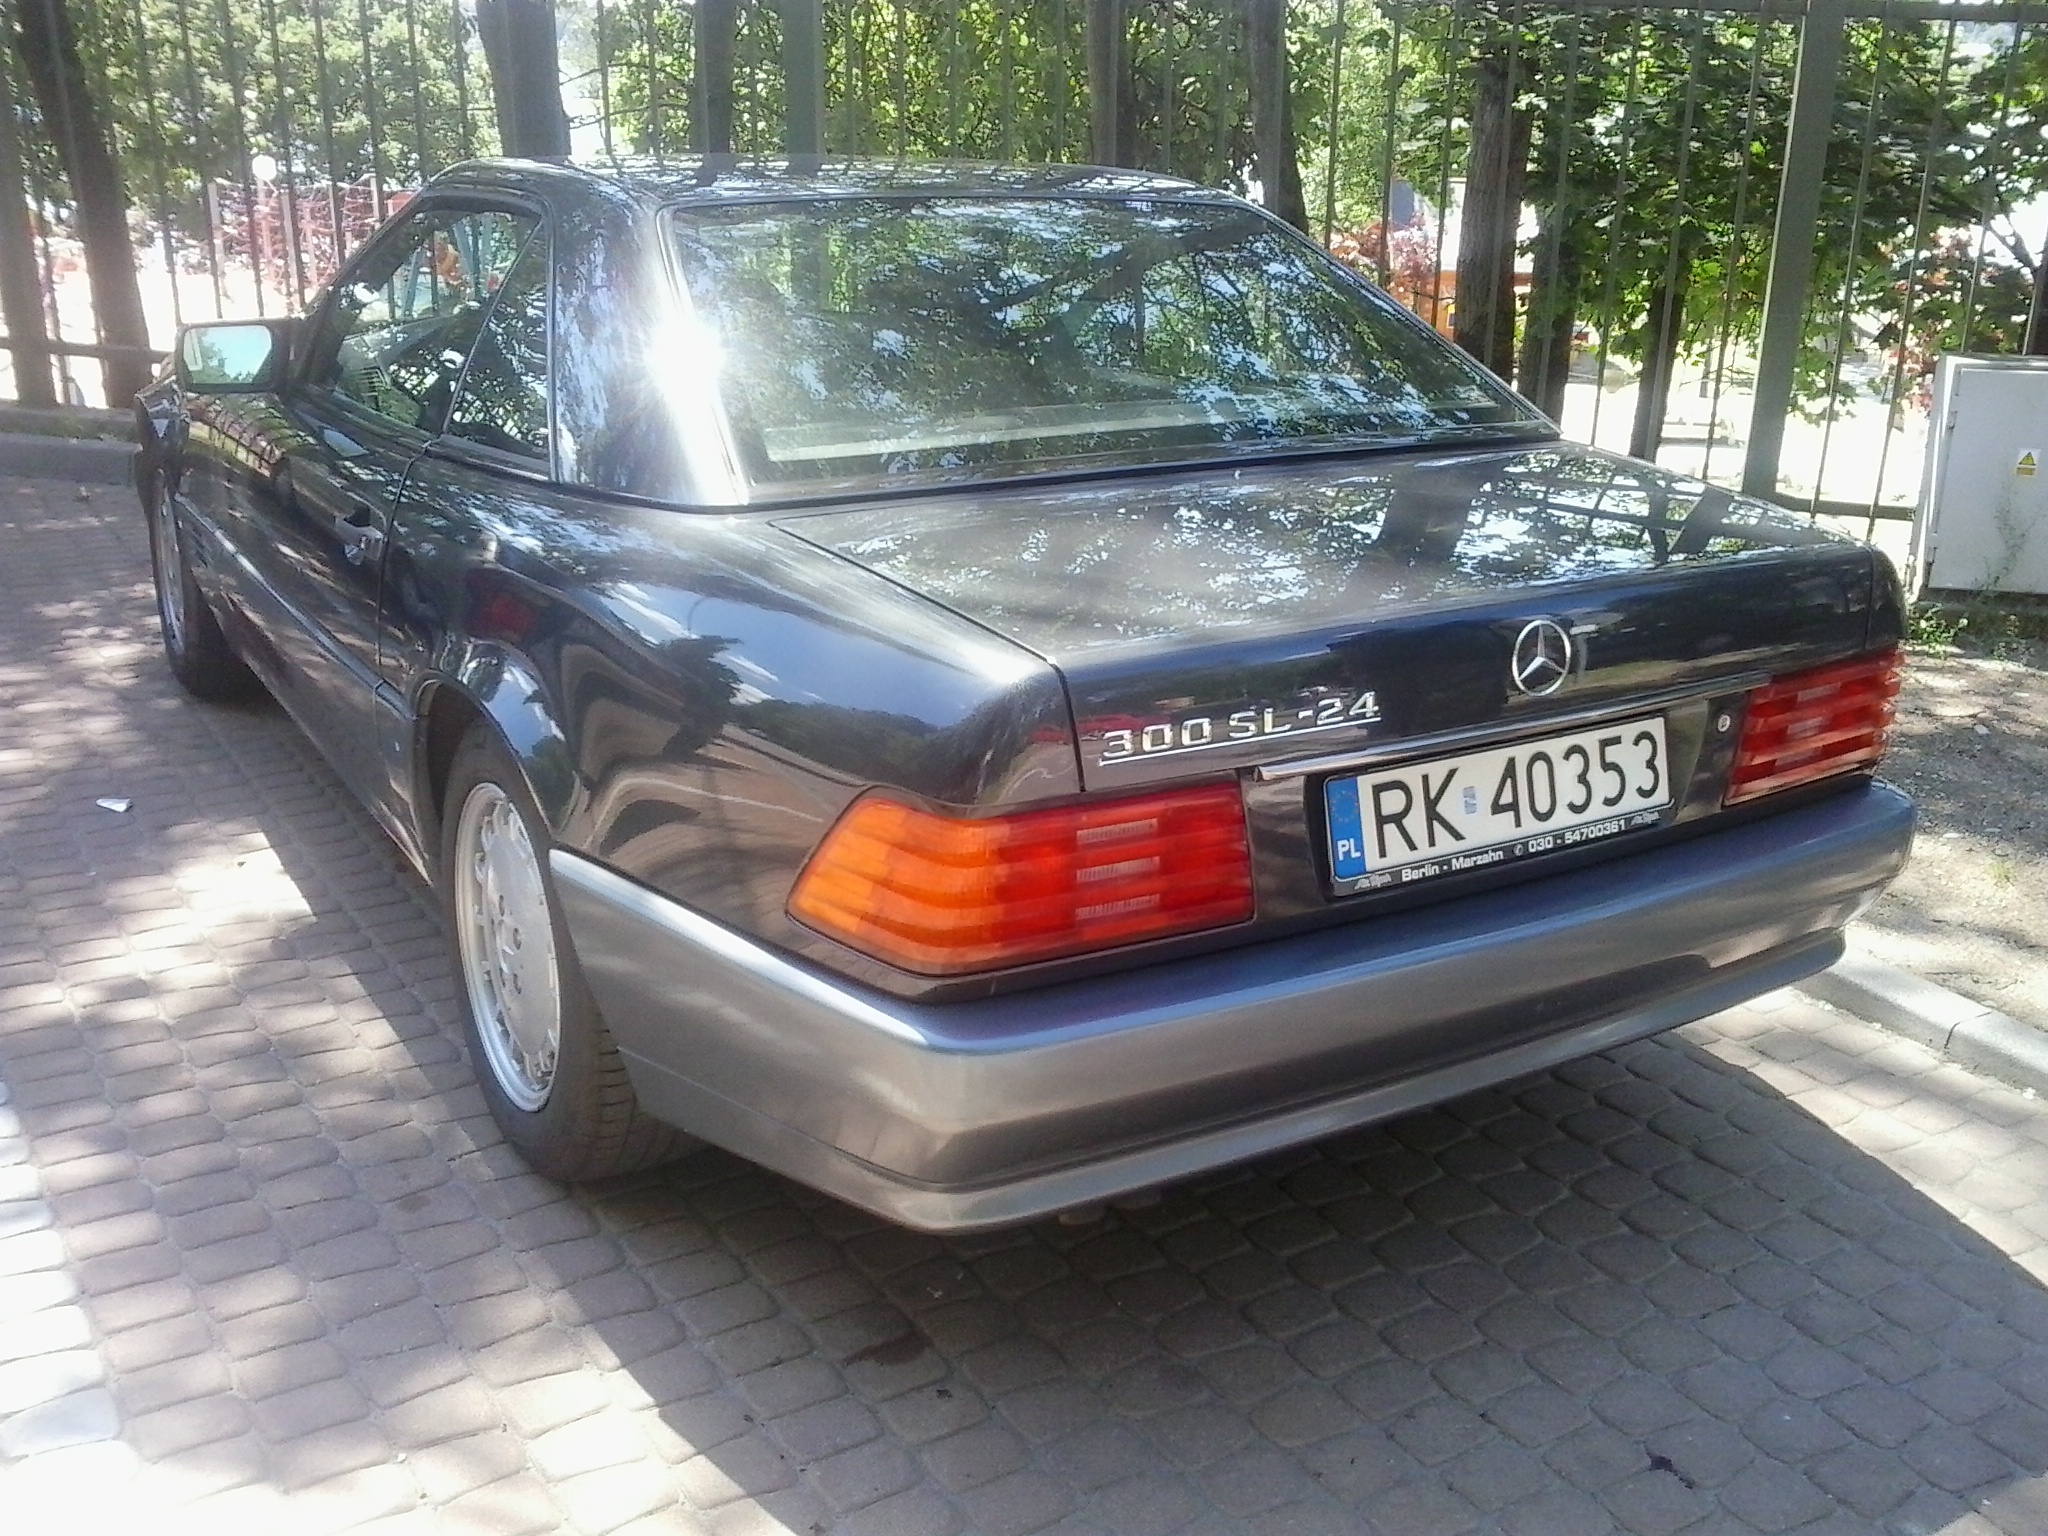 http://124coupe.pl/hosting/images/201406ppp.jpg